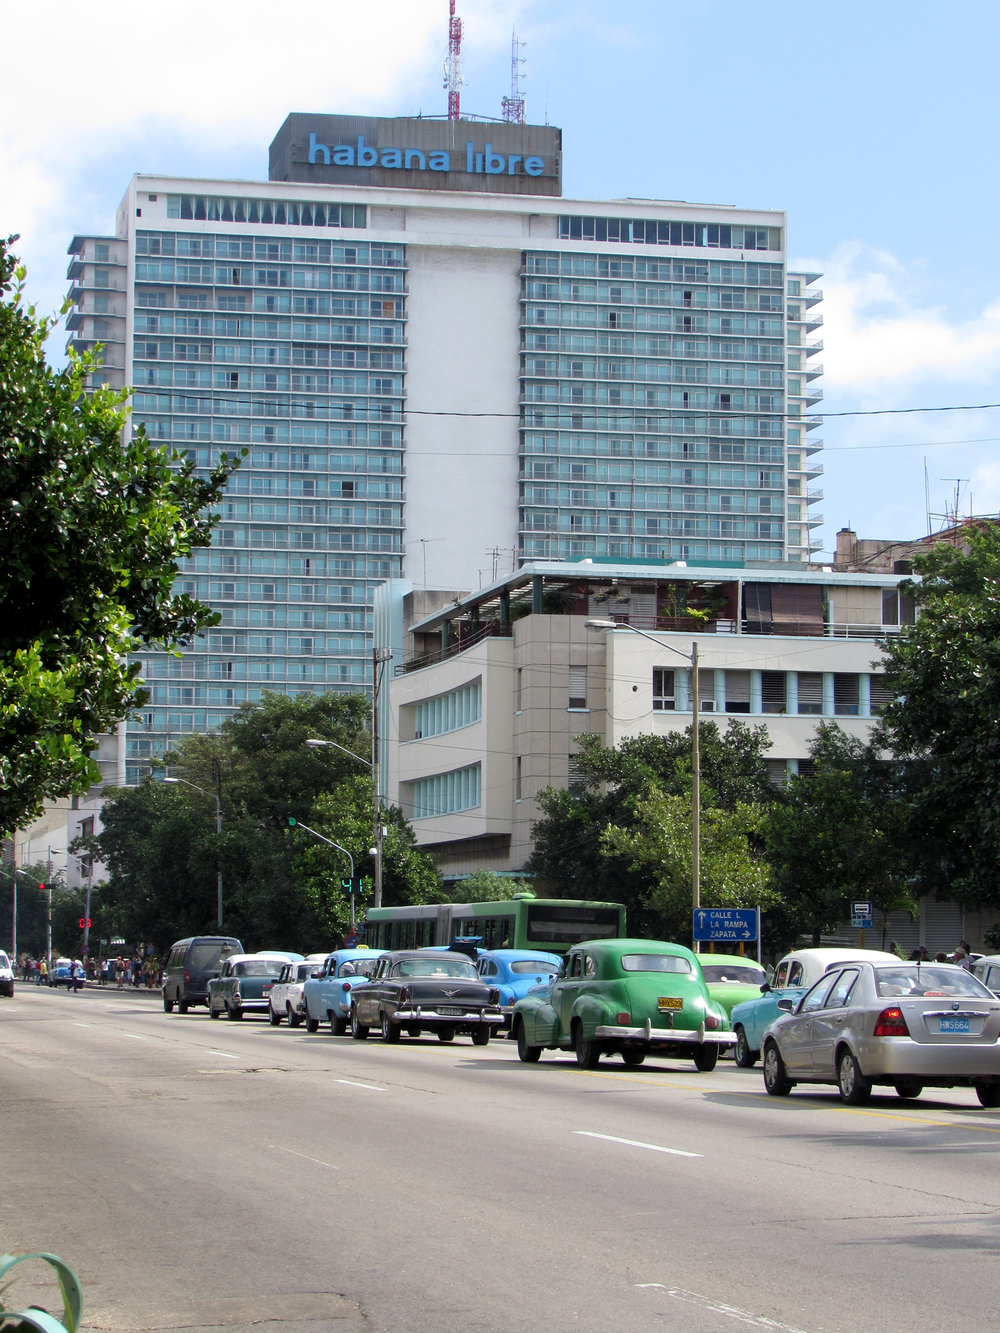 One of the tallest buildings in Havana